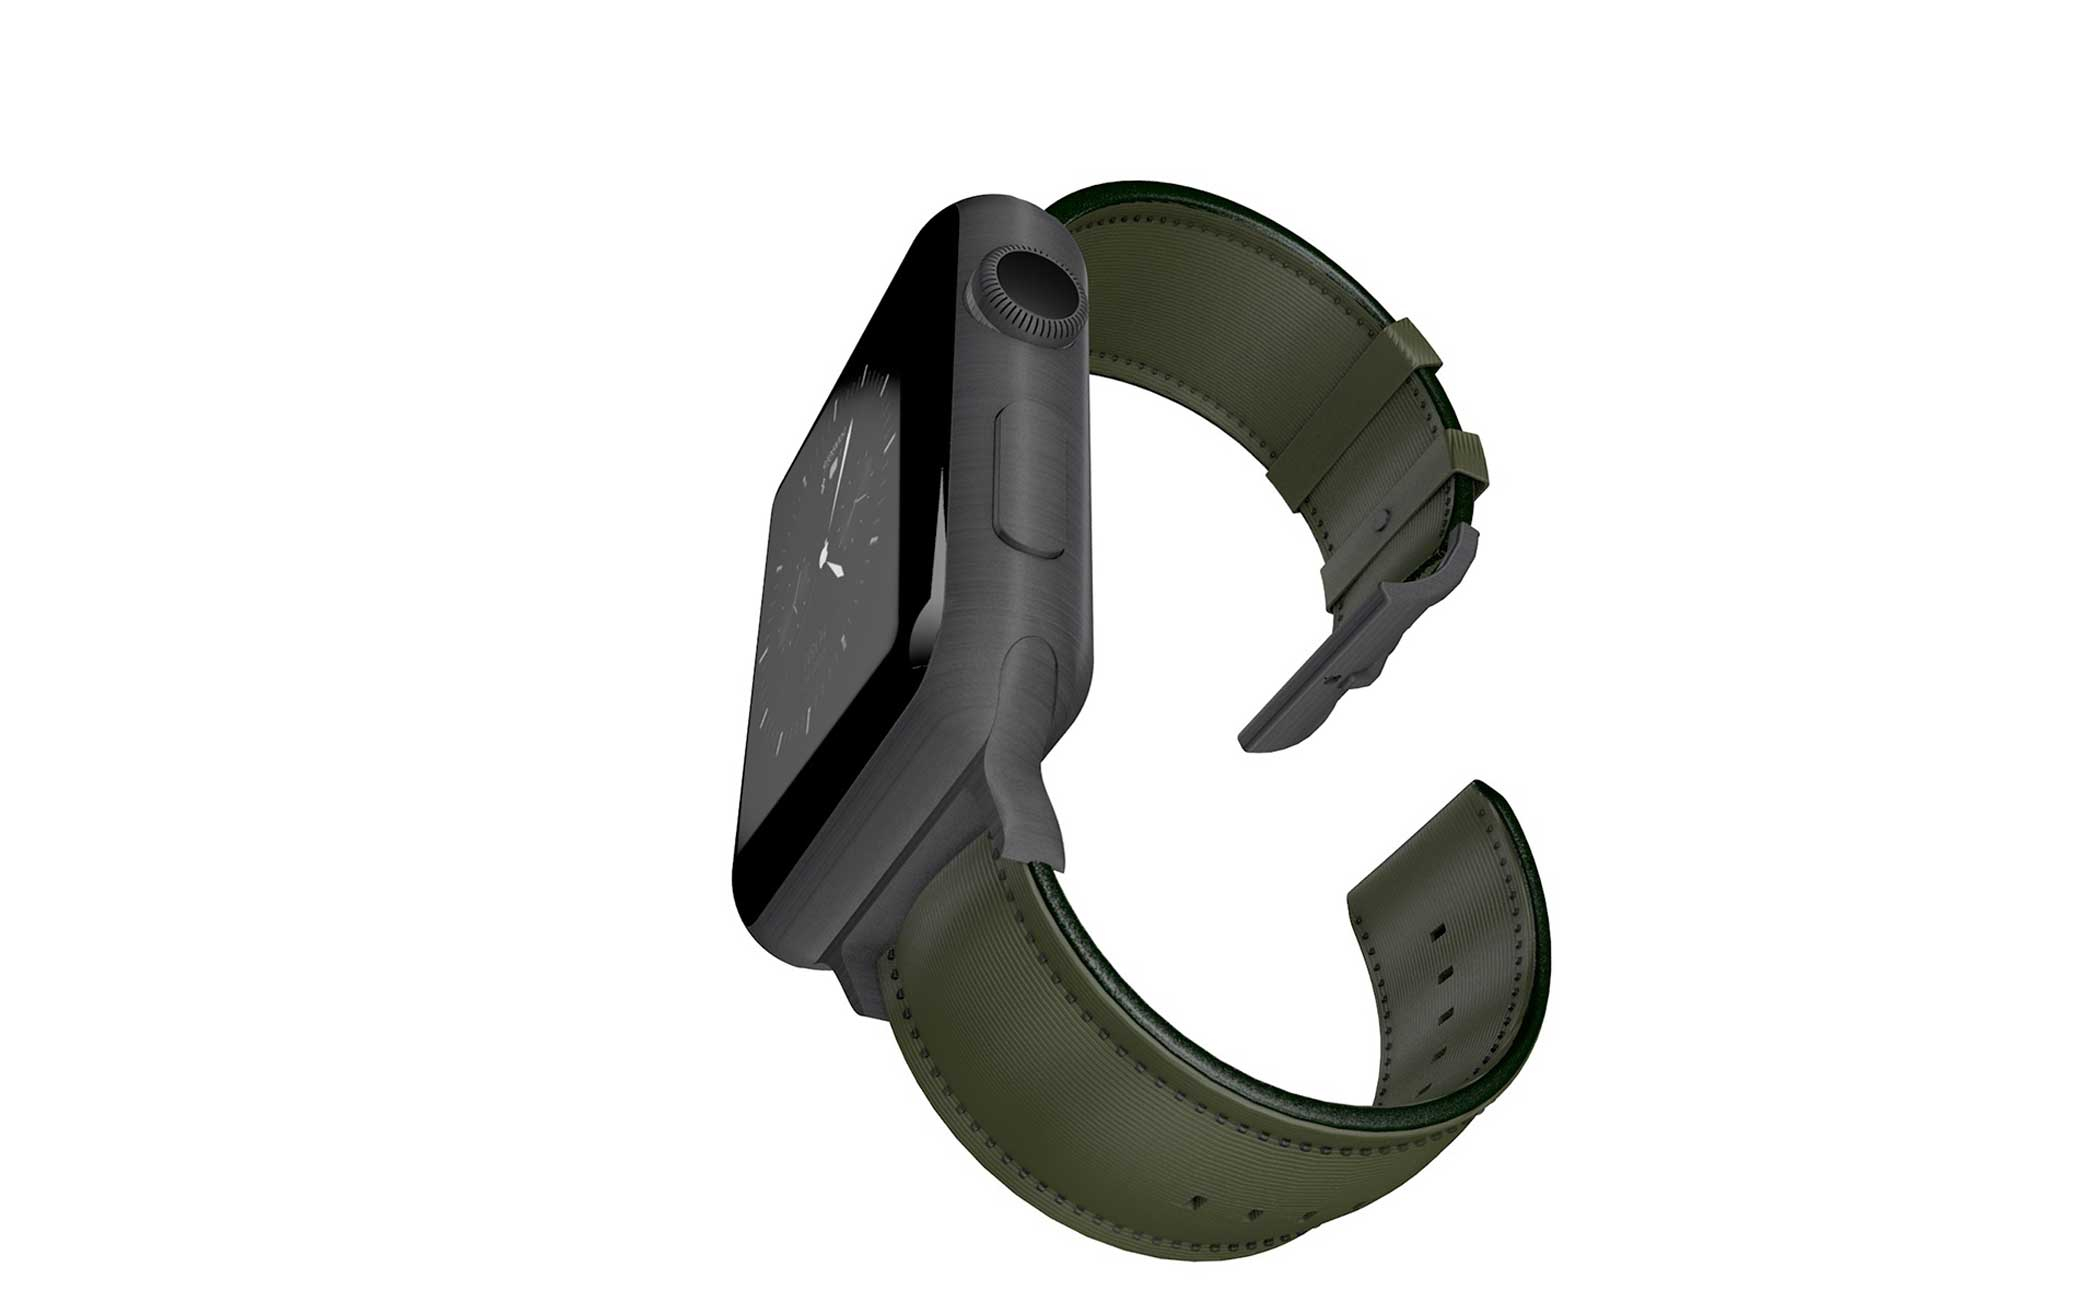 2015: Apple Watch Second Generation The new Apple Watch would include a camera and a strap that measures blood pressure.